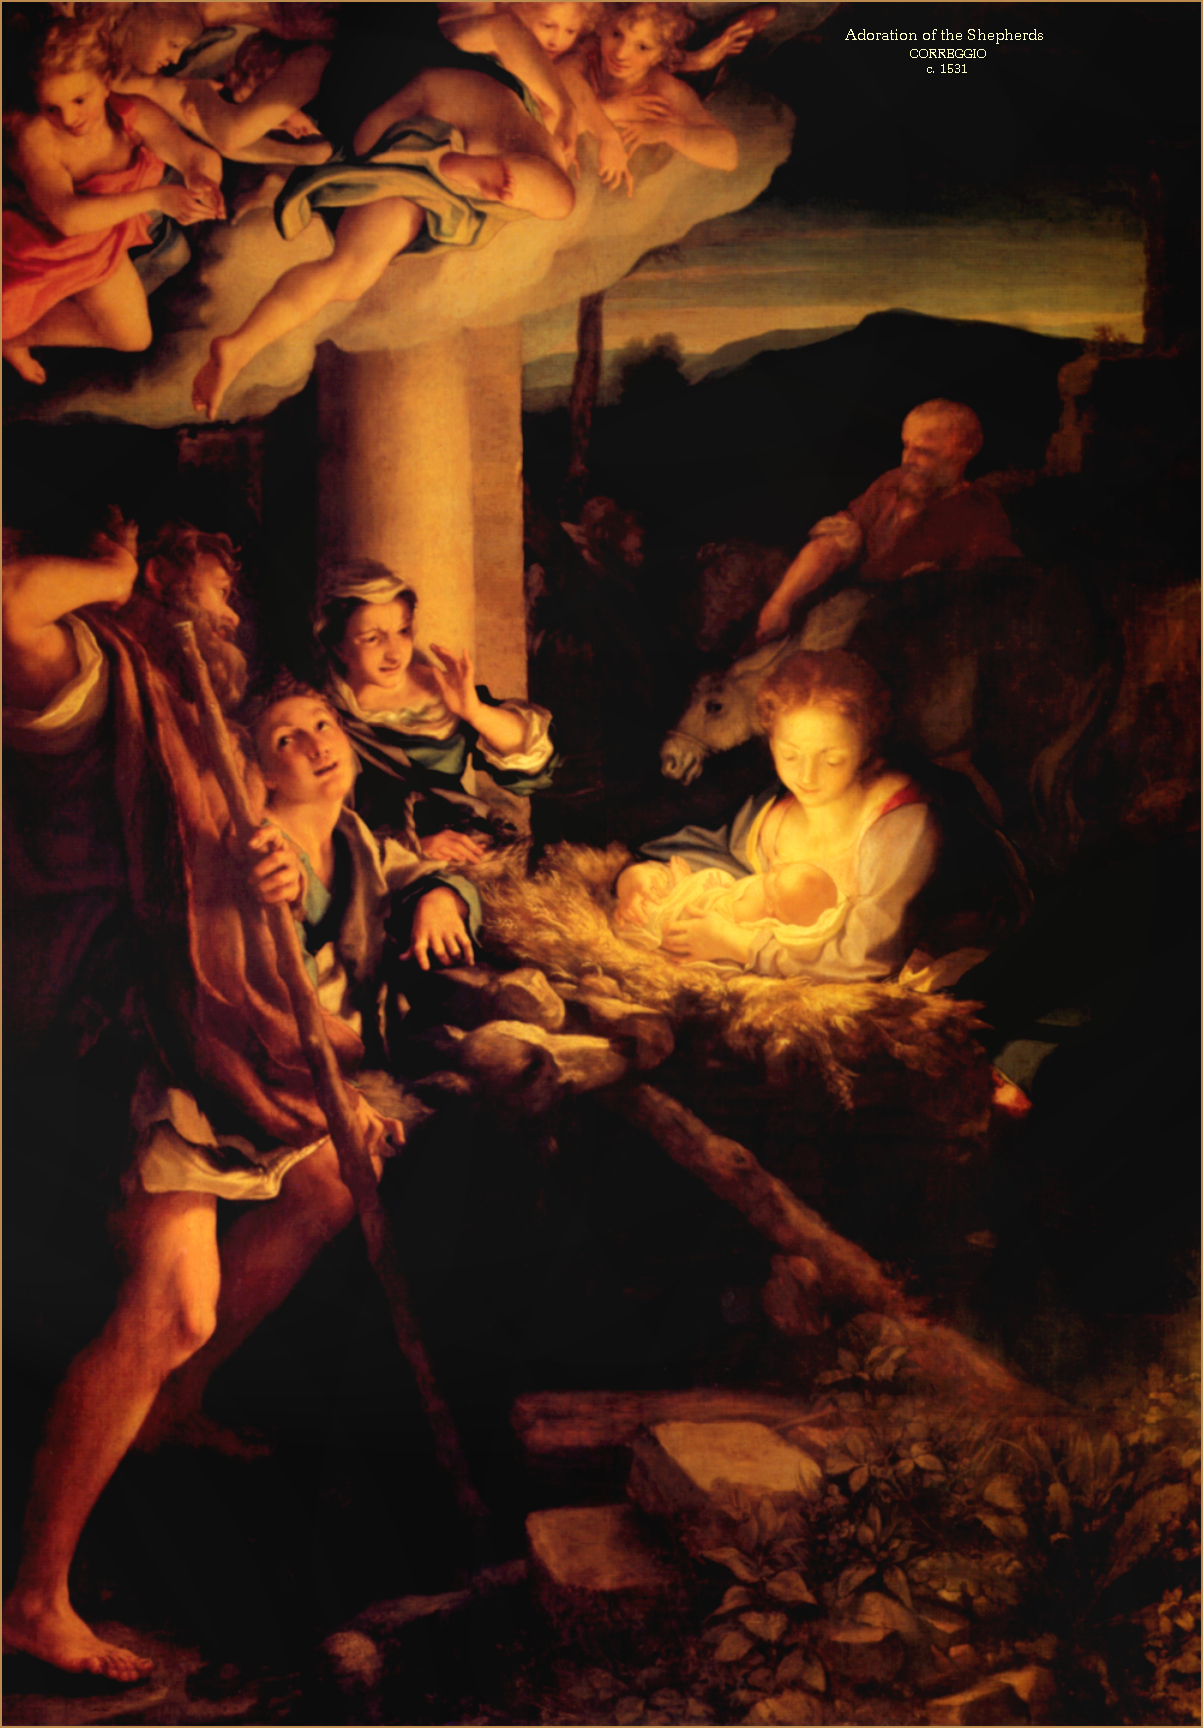 Adoration of the Shepherds by Correggio